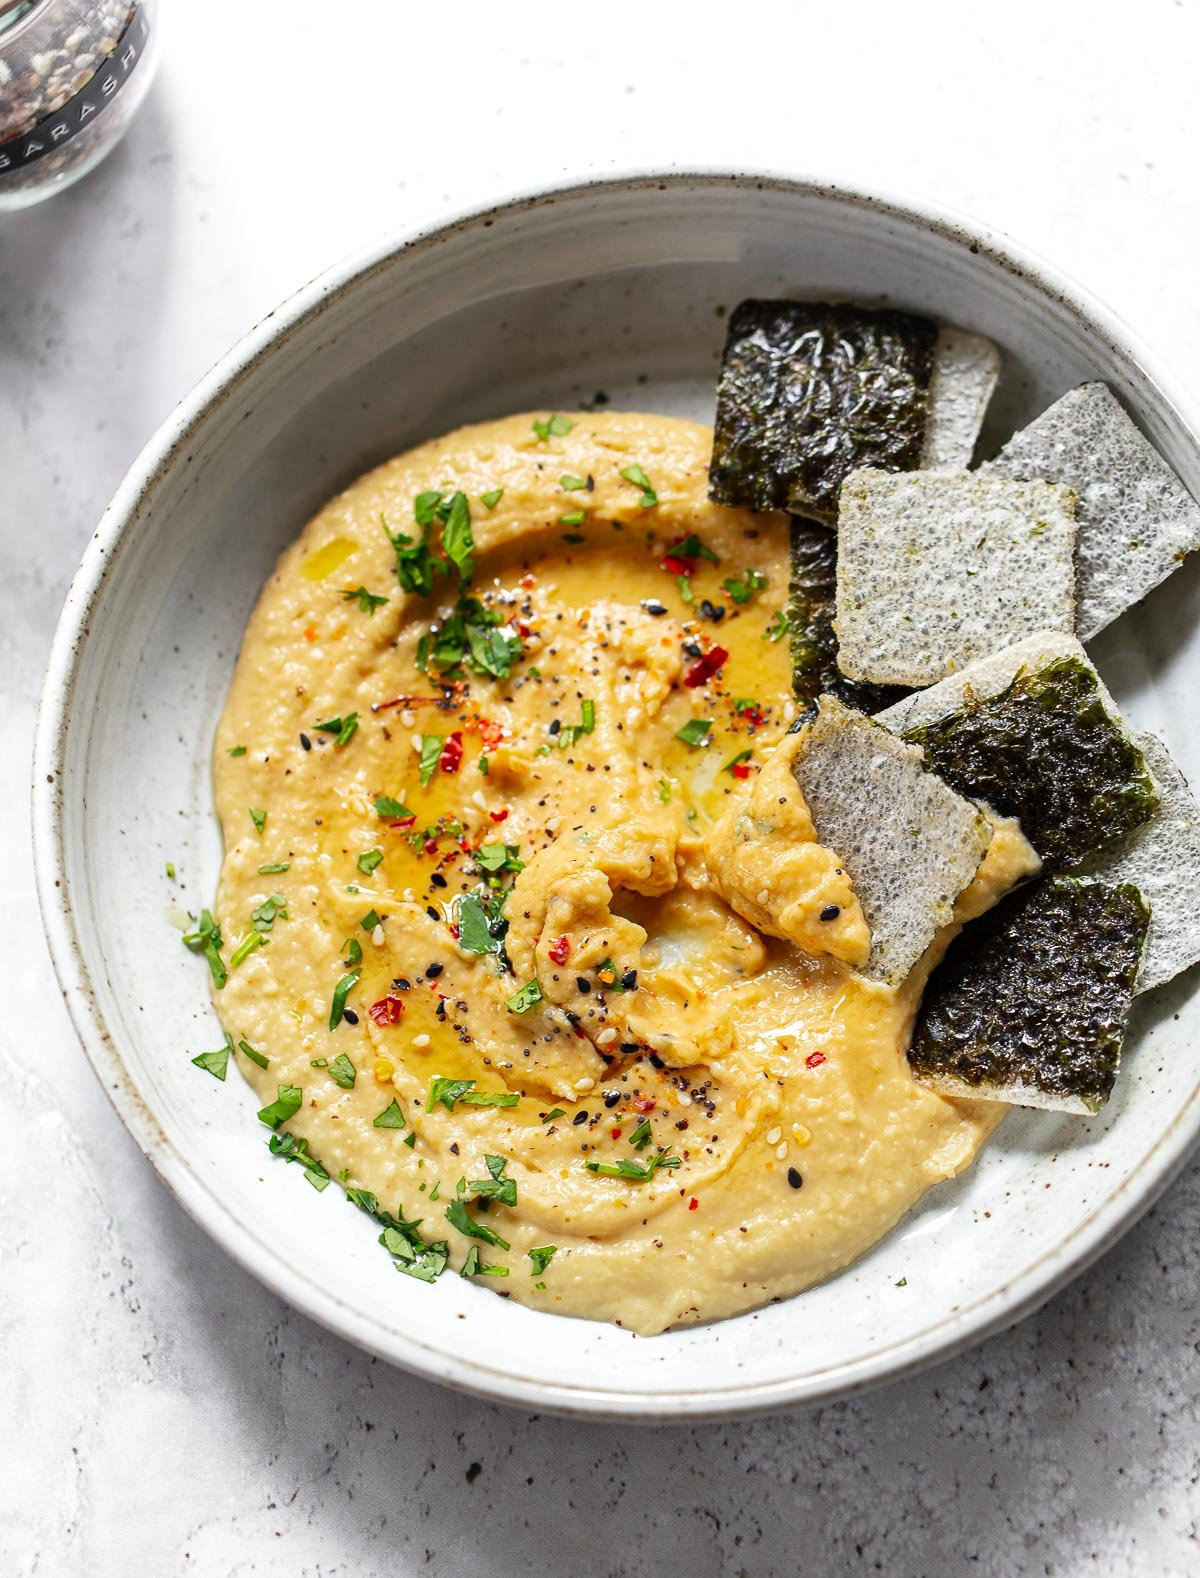 A golden yellow hummus made with miso, chickpeas and toasted sesame oil in a gray bowl. Seaweed rice crackers on the side